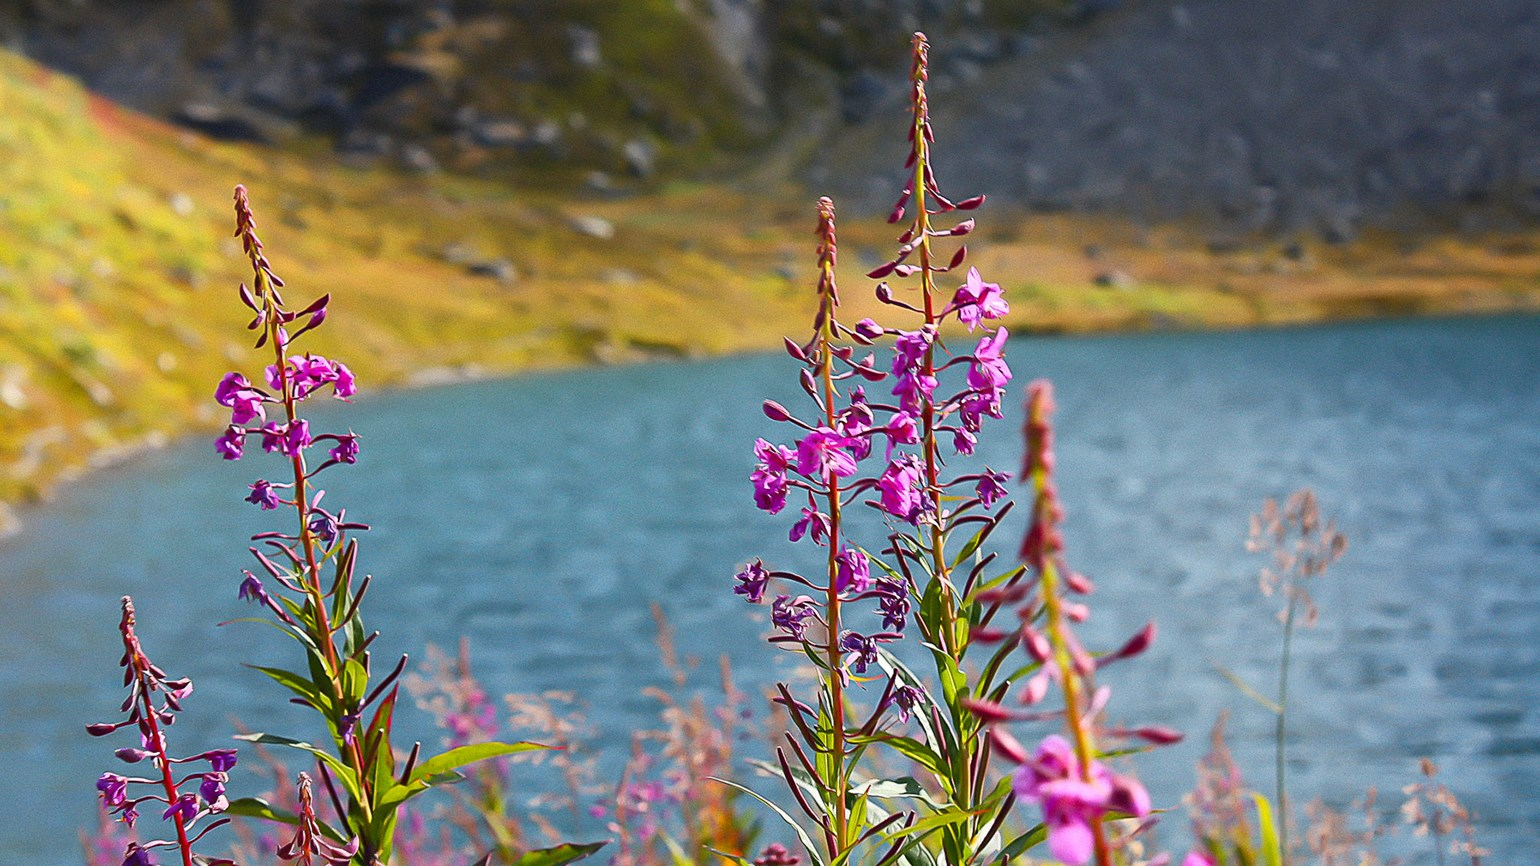 Salmon Berry takes over at storied Hatcher Pass site